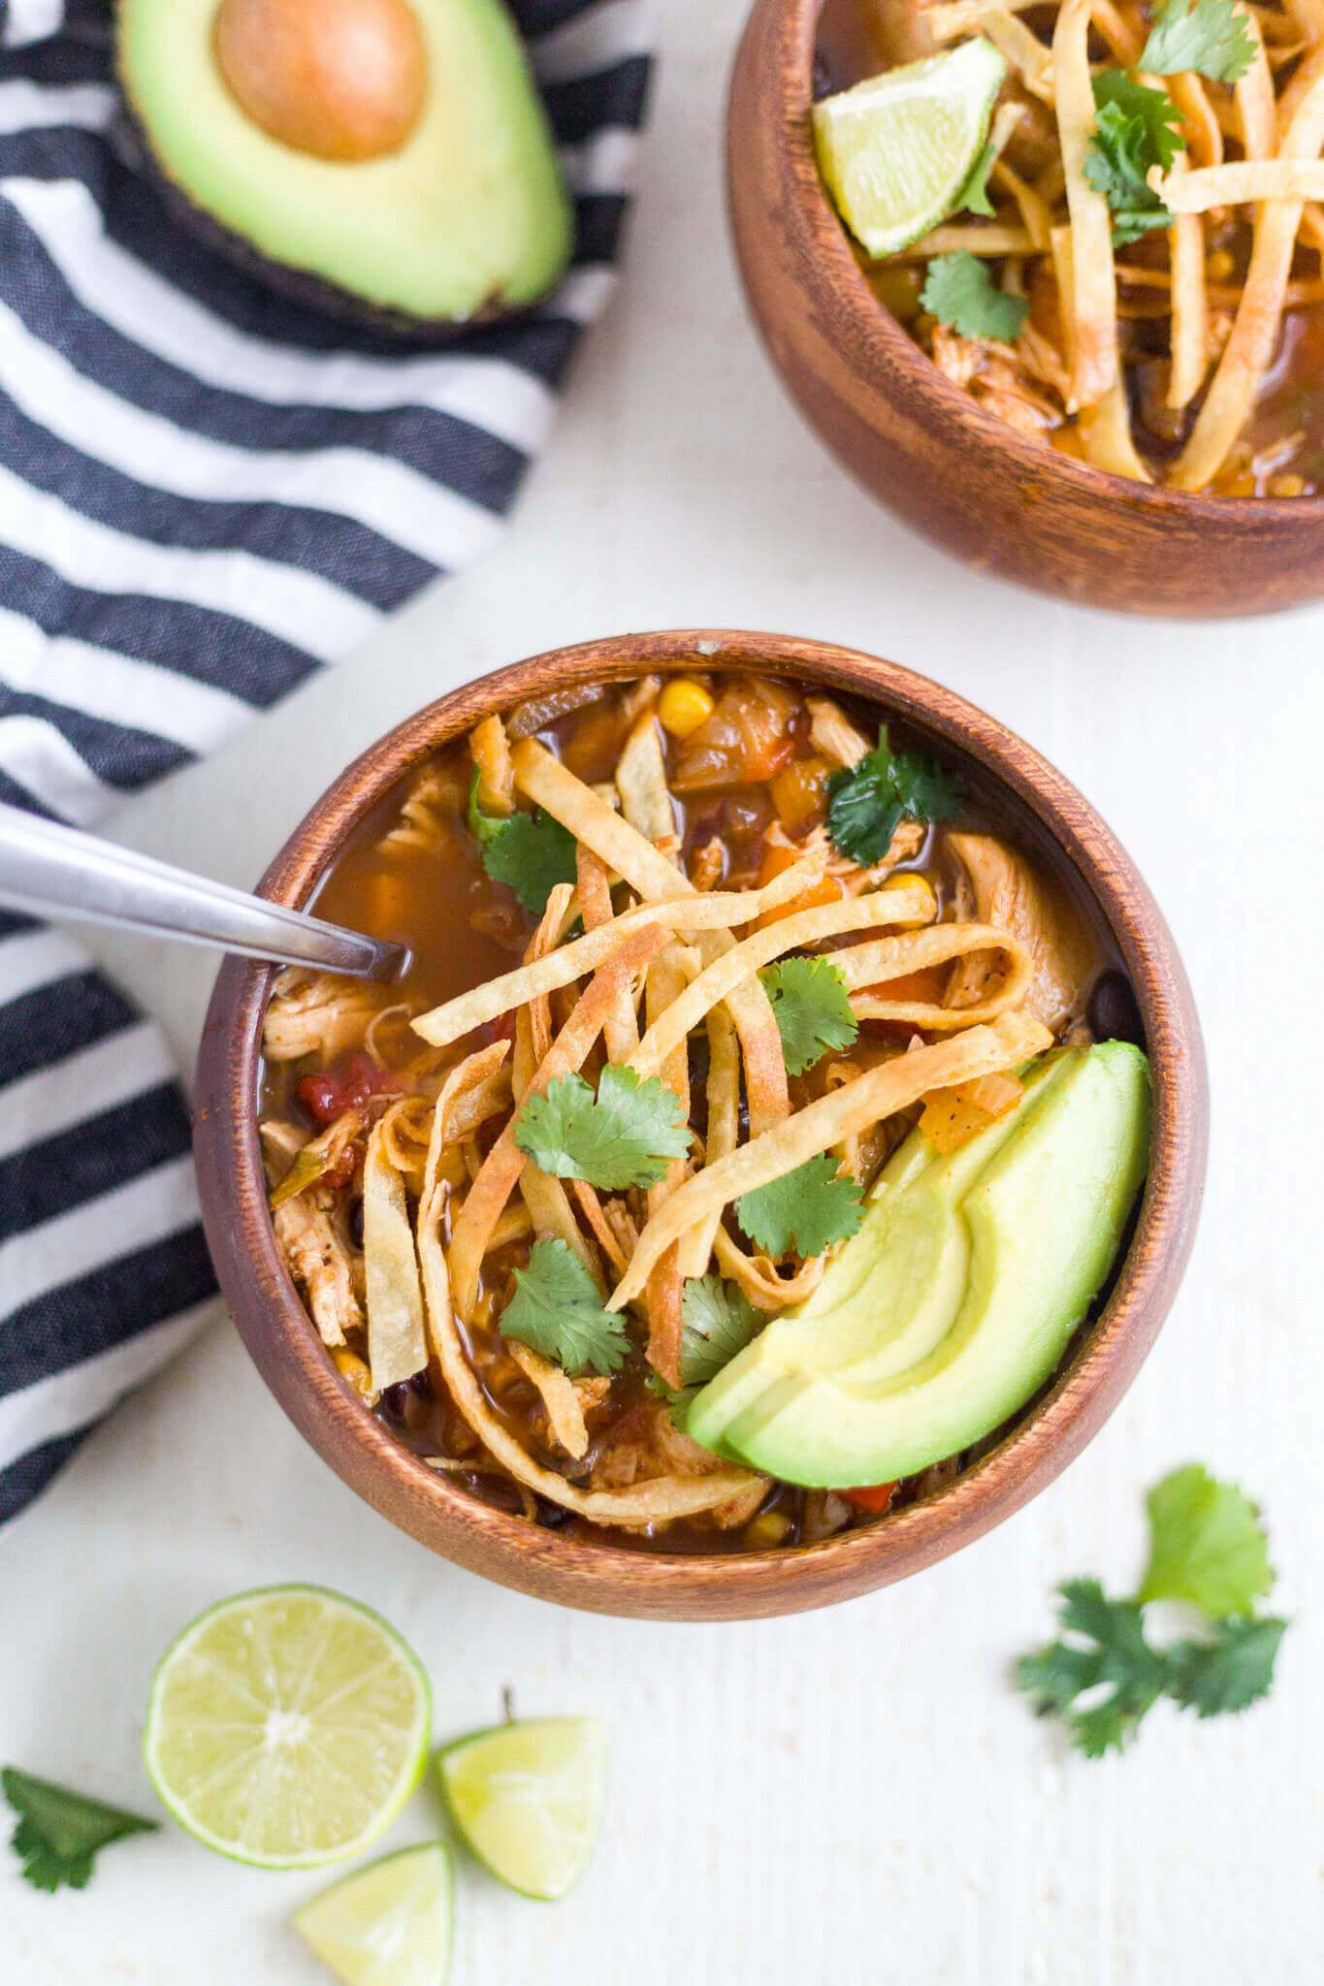 Healthy Slow Cooker Chicken Tortilla Soup - Healthy Slow Cooker Recipes Chicken